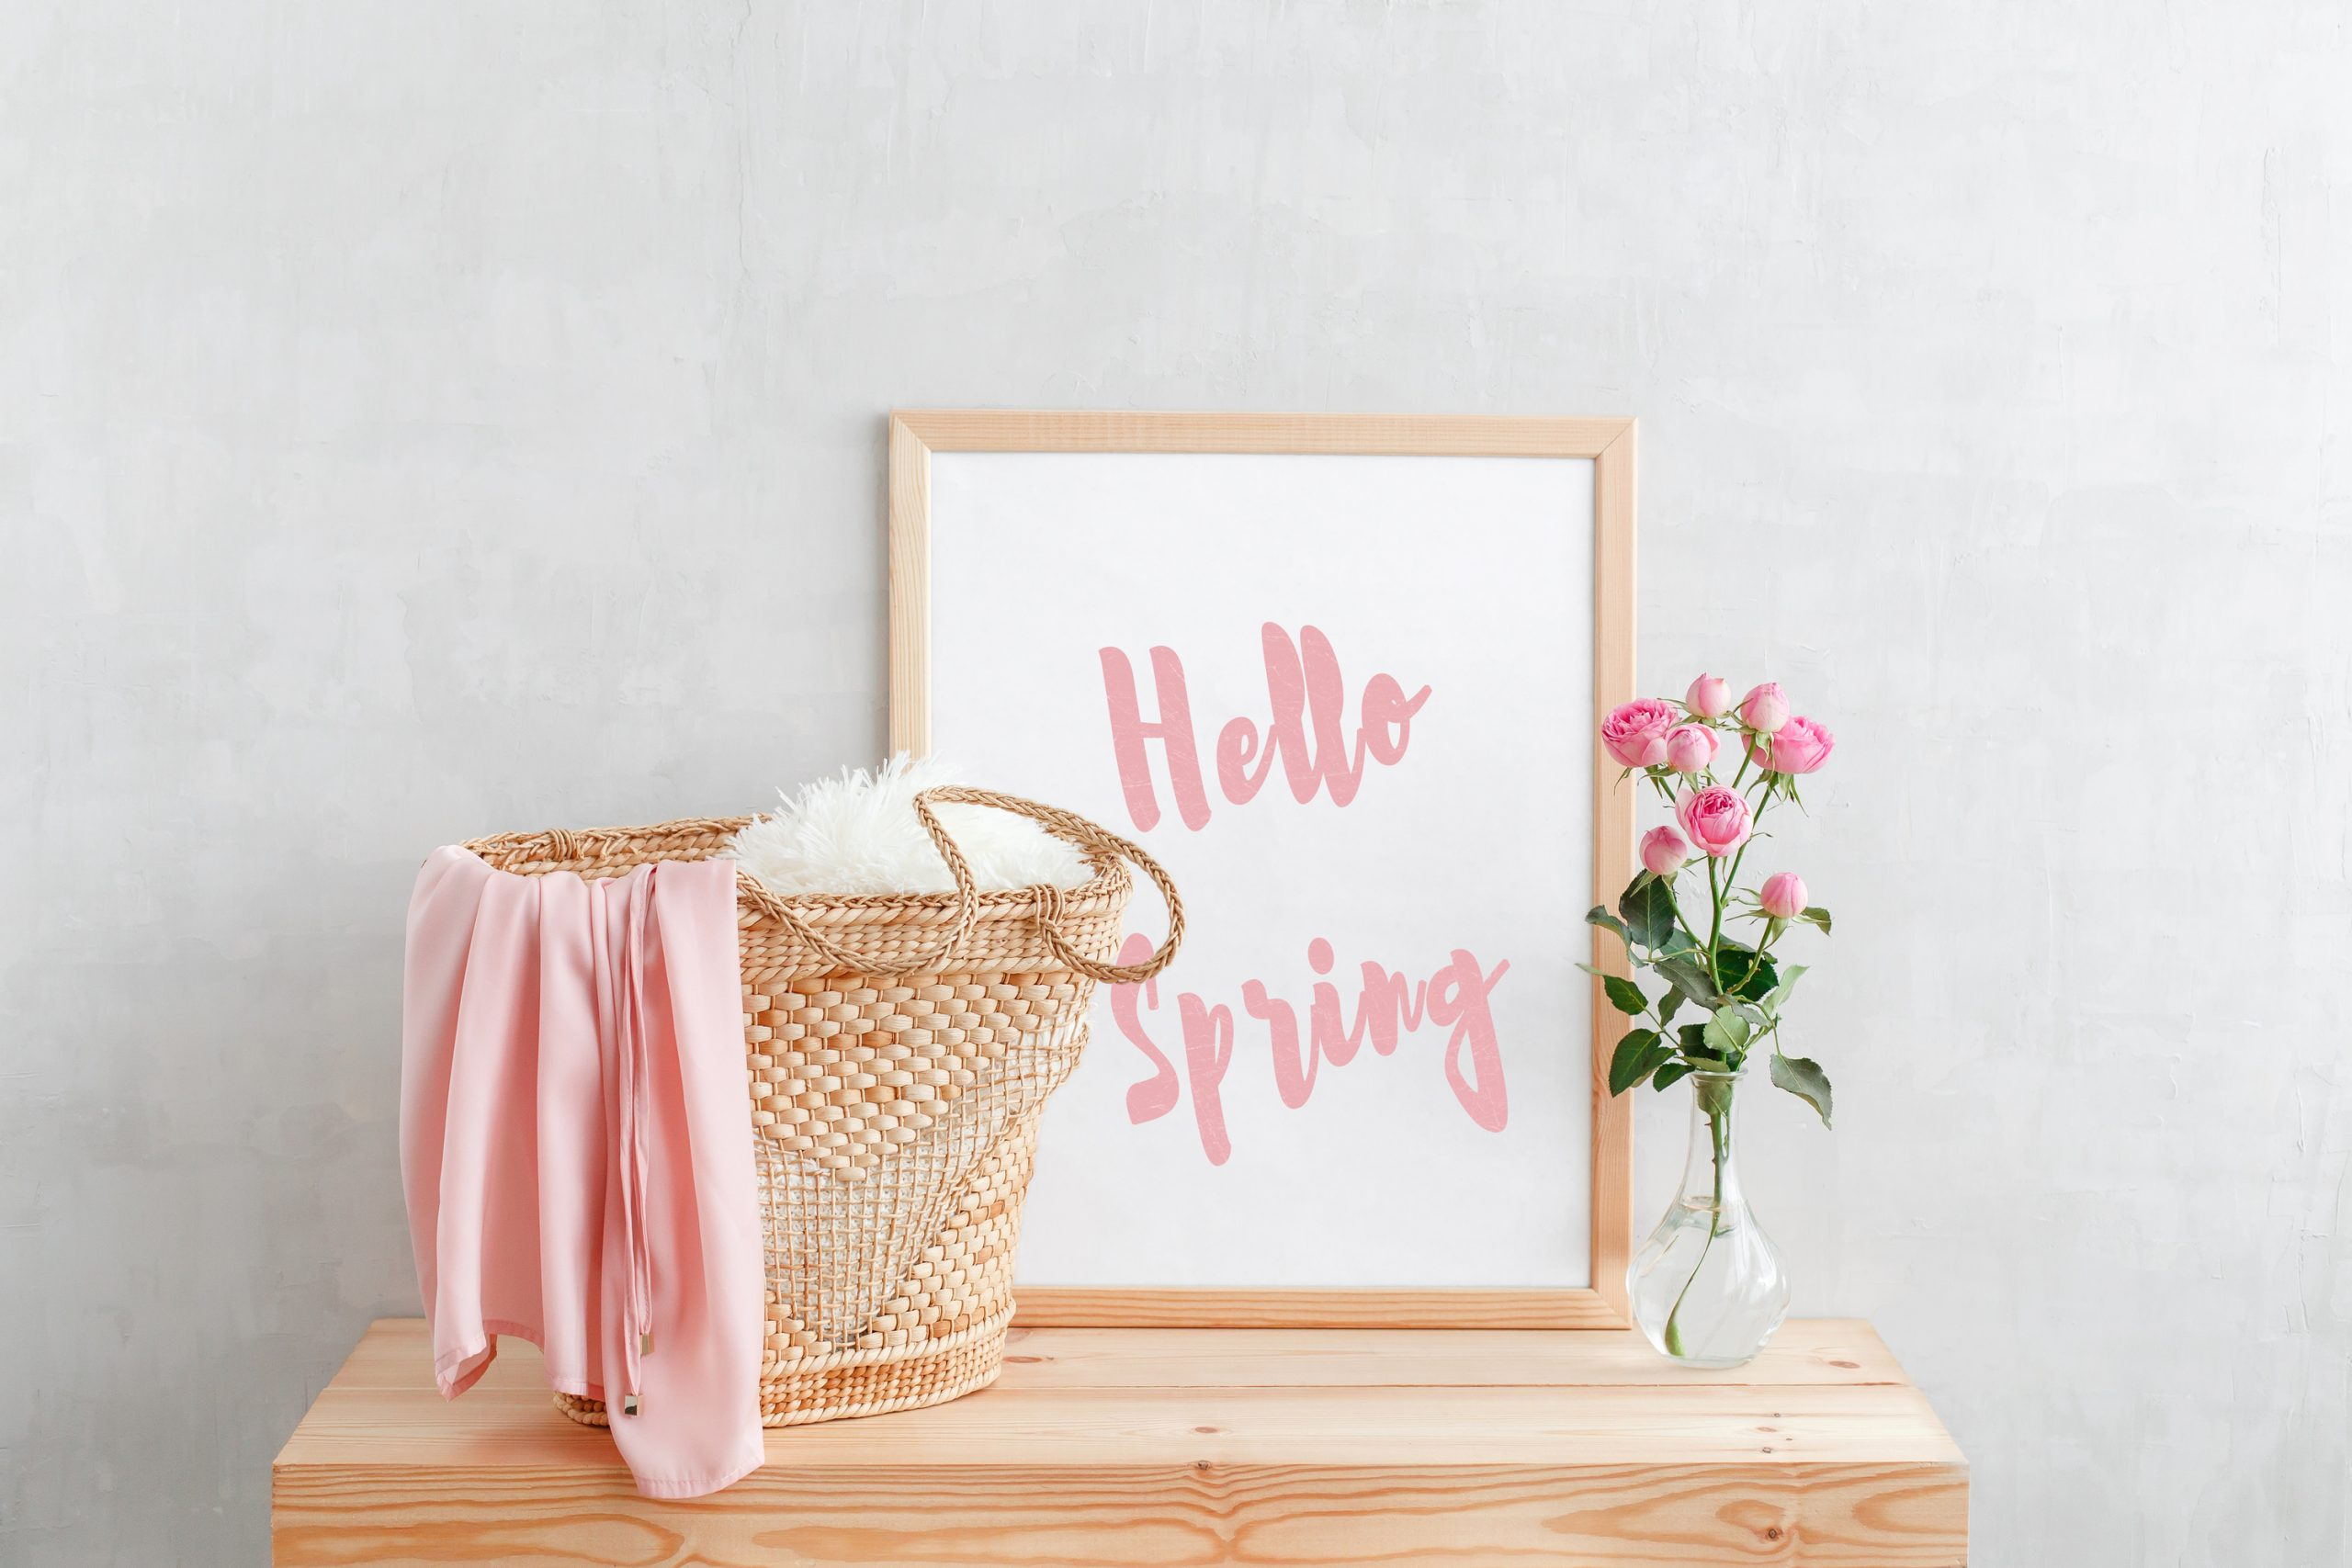 I'm throwing myself into making my own primitive spring crafts for my home. These are all pretty easy to make, you'll just need some of your usual craft supplies! This wood sign is easy to DIY and will add a nice pop of color to your home.